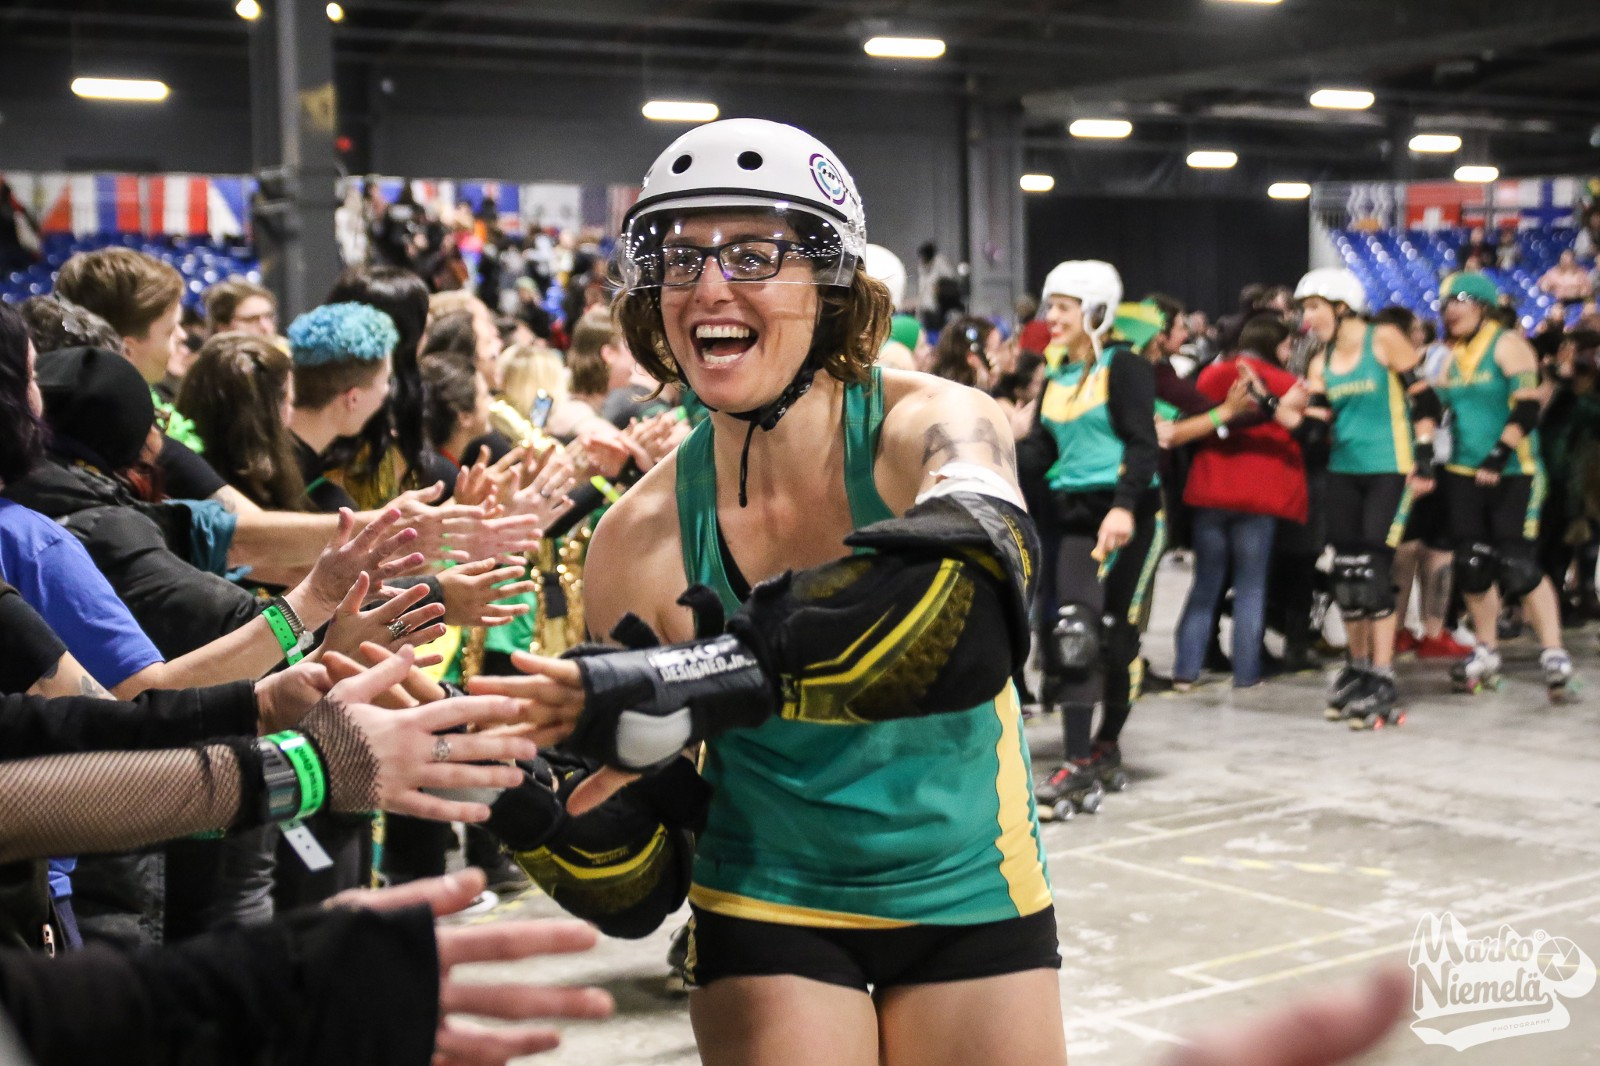 Roller Australia Elite Eight Is Set In Manchester At The 2018 Roller Derby World Cup